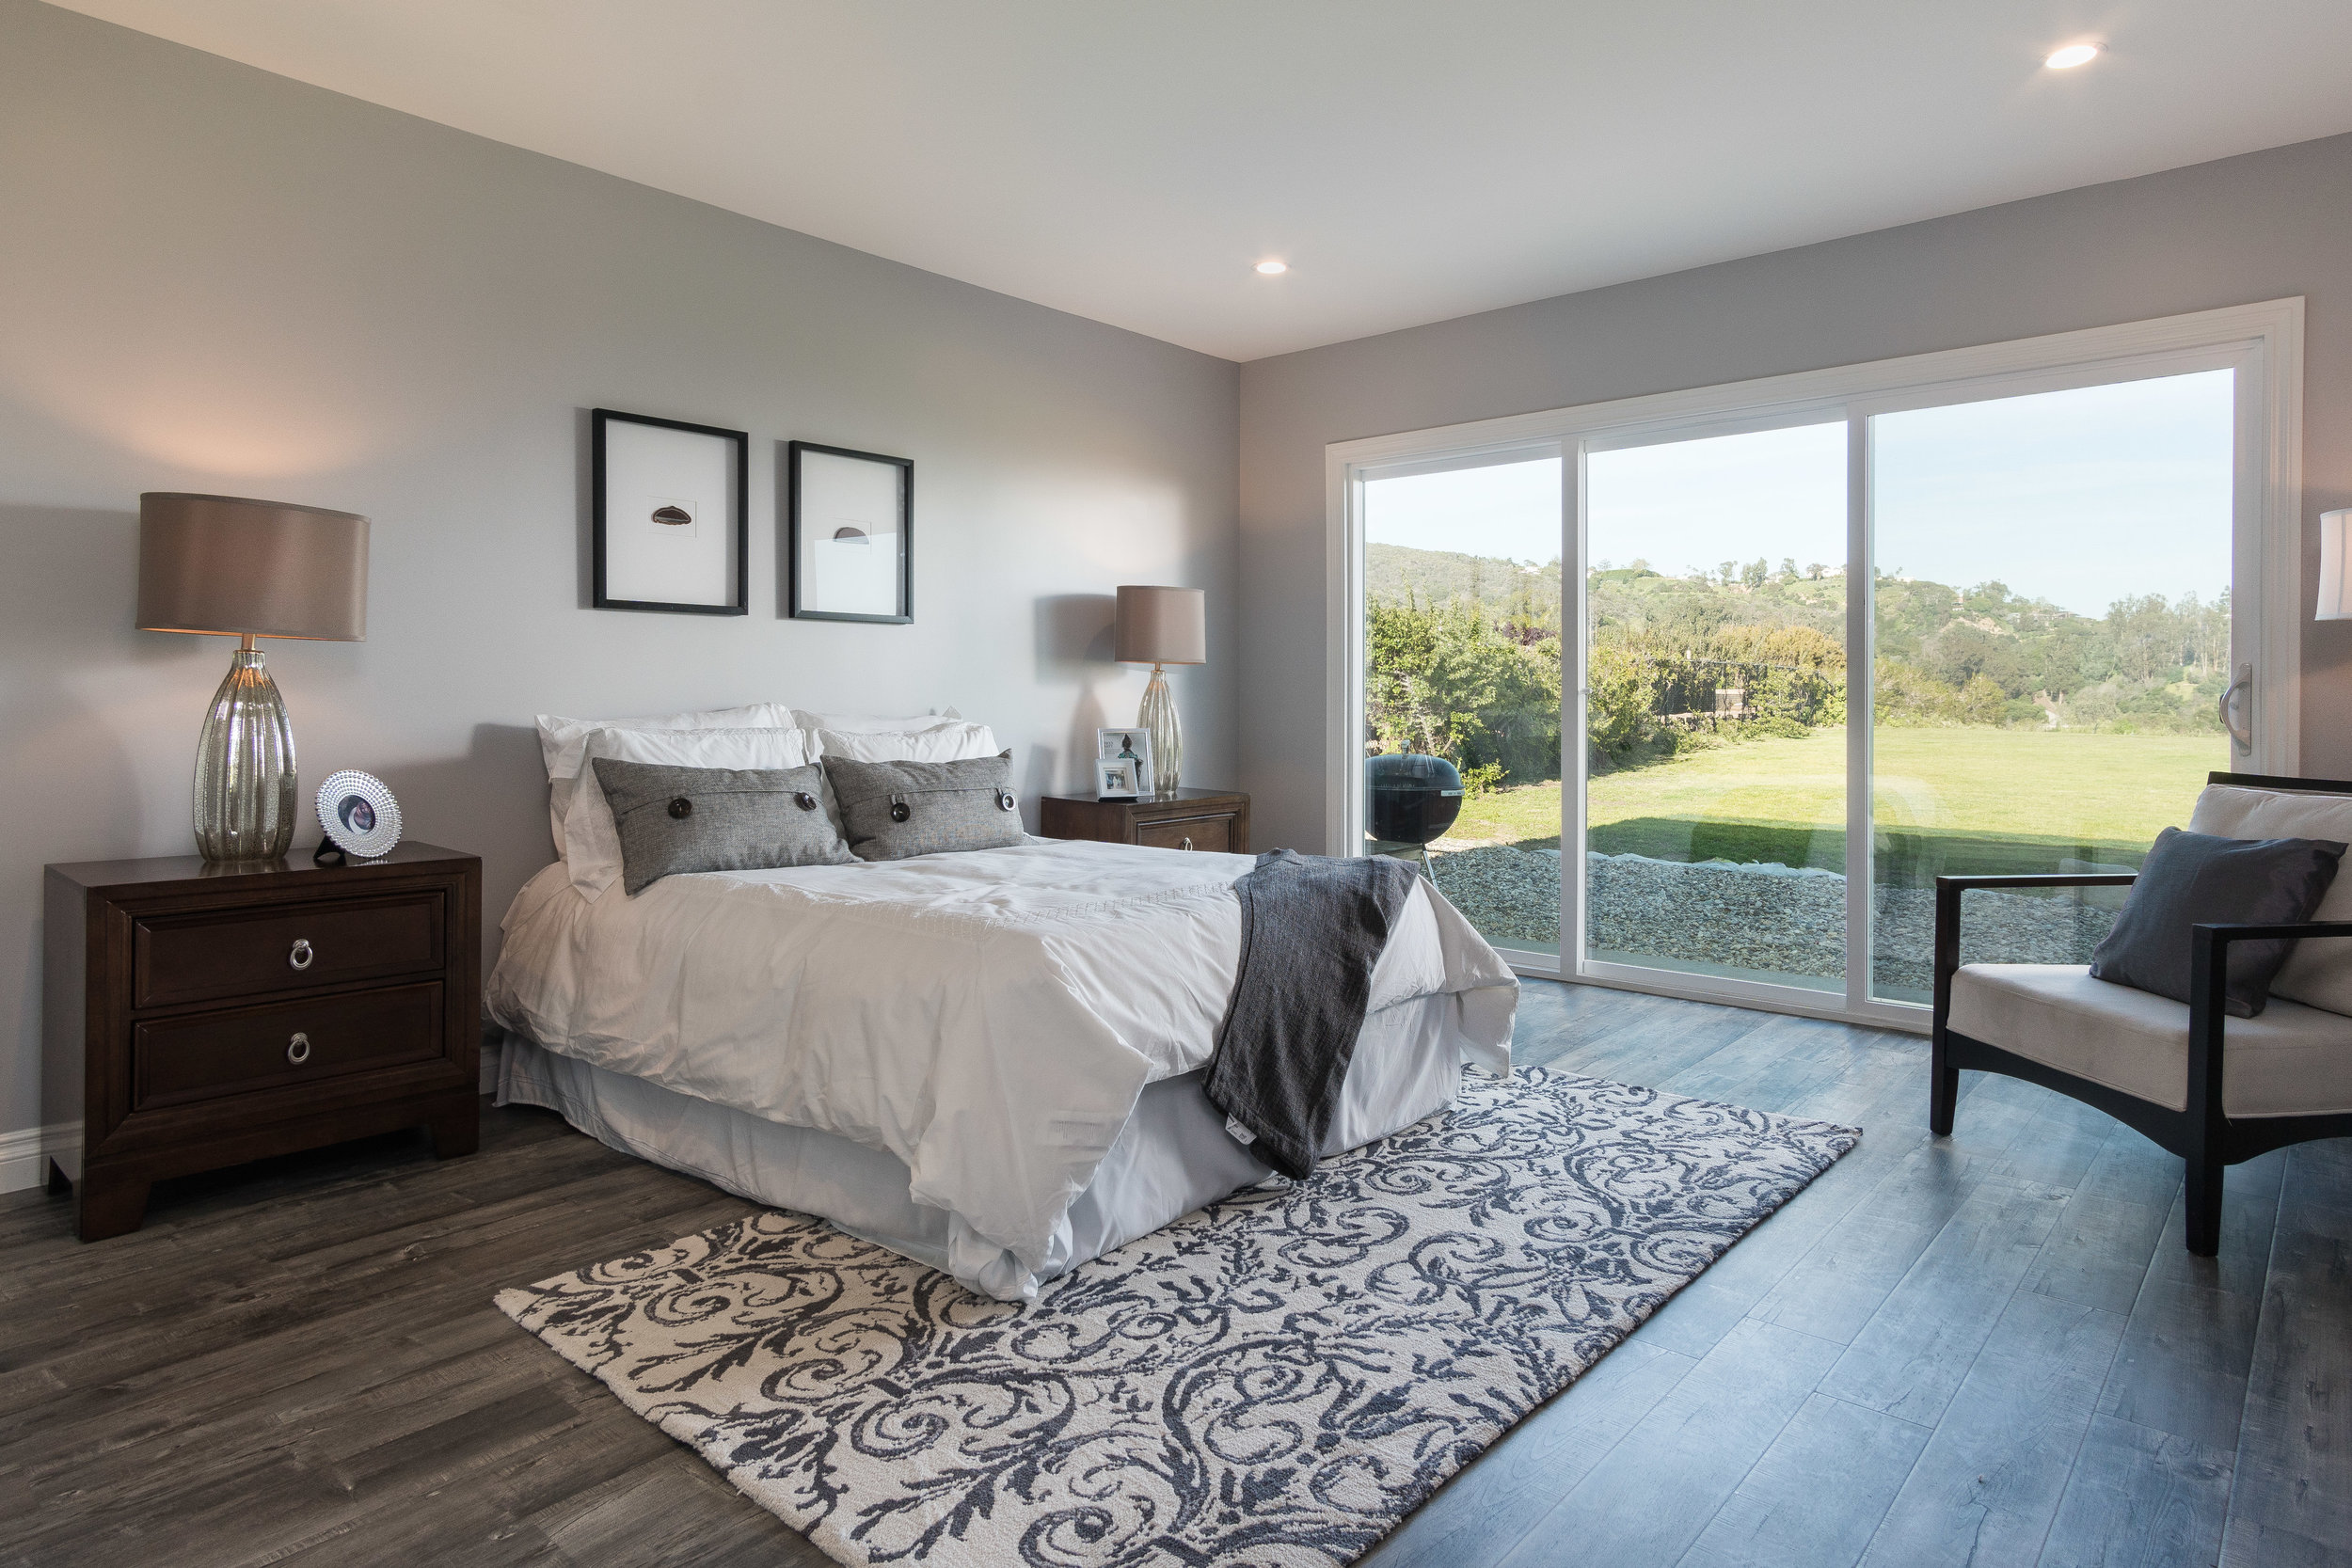 Delivered photo of the master bedroom ©Ryan Carr - Legacy Listing Photography - 2017